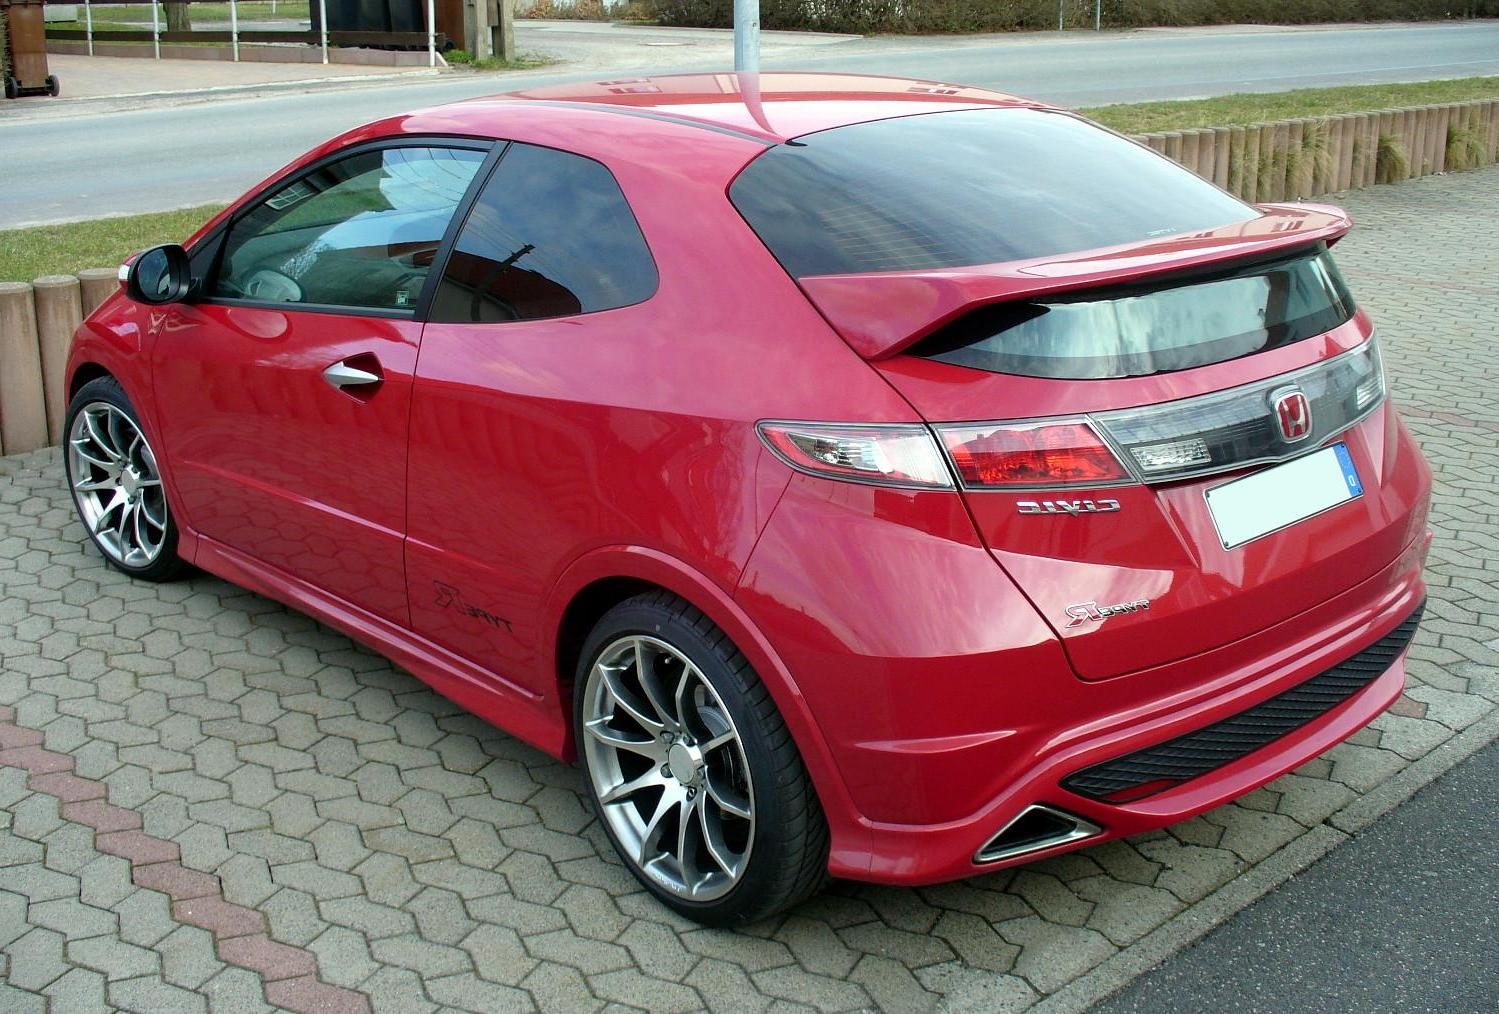 Honda Civic Type R. The EDM